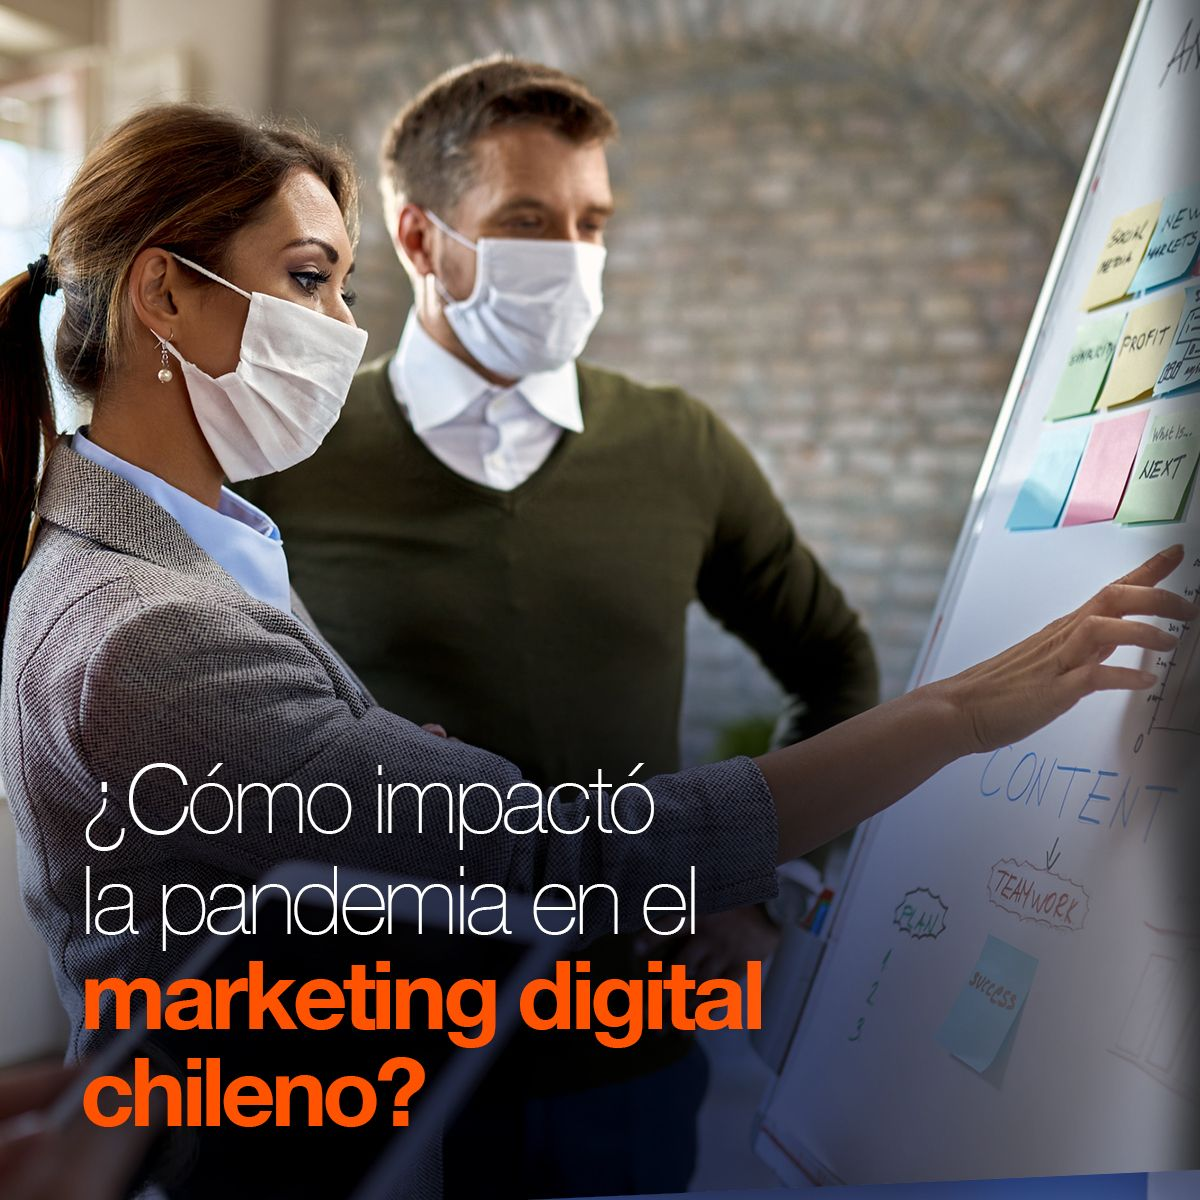 ¿Cómo impactó la pandemia en el marketing digital chileno?